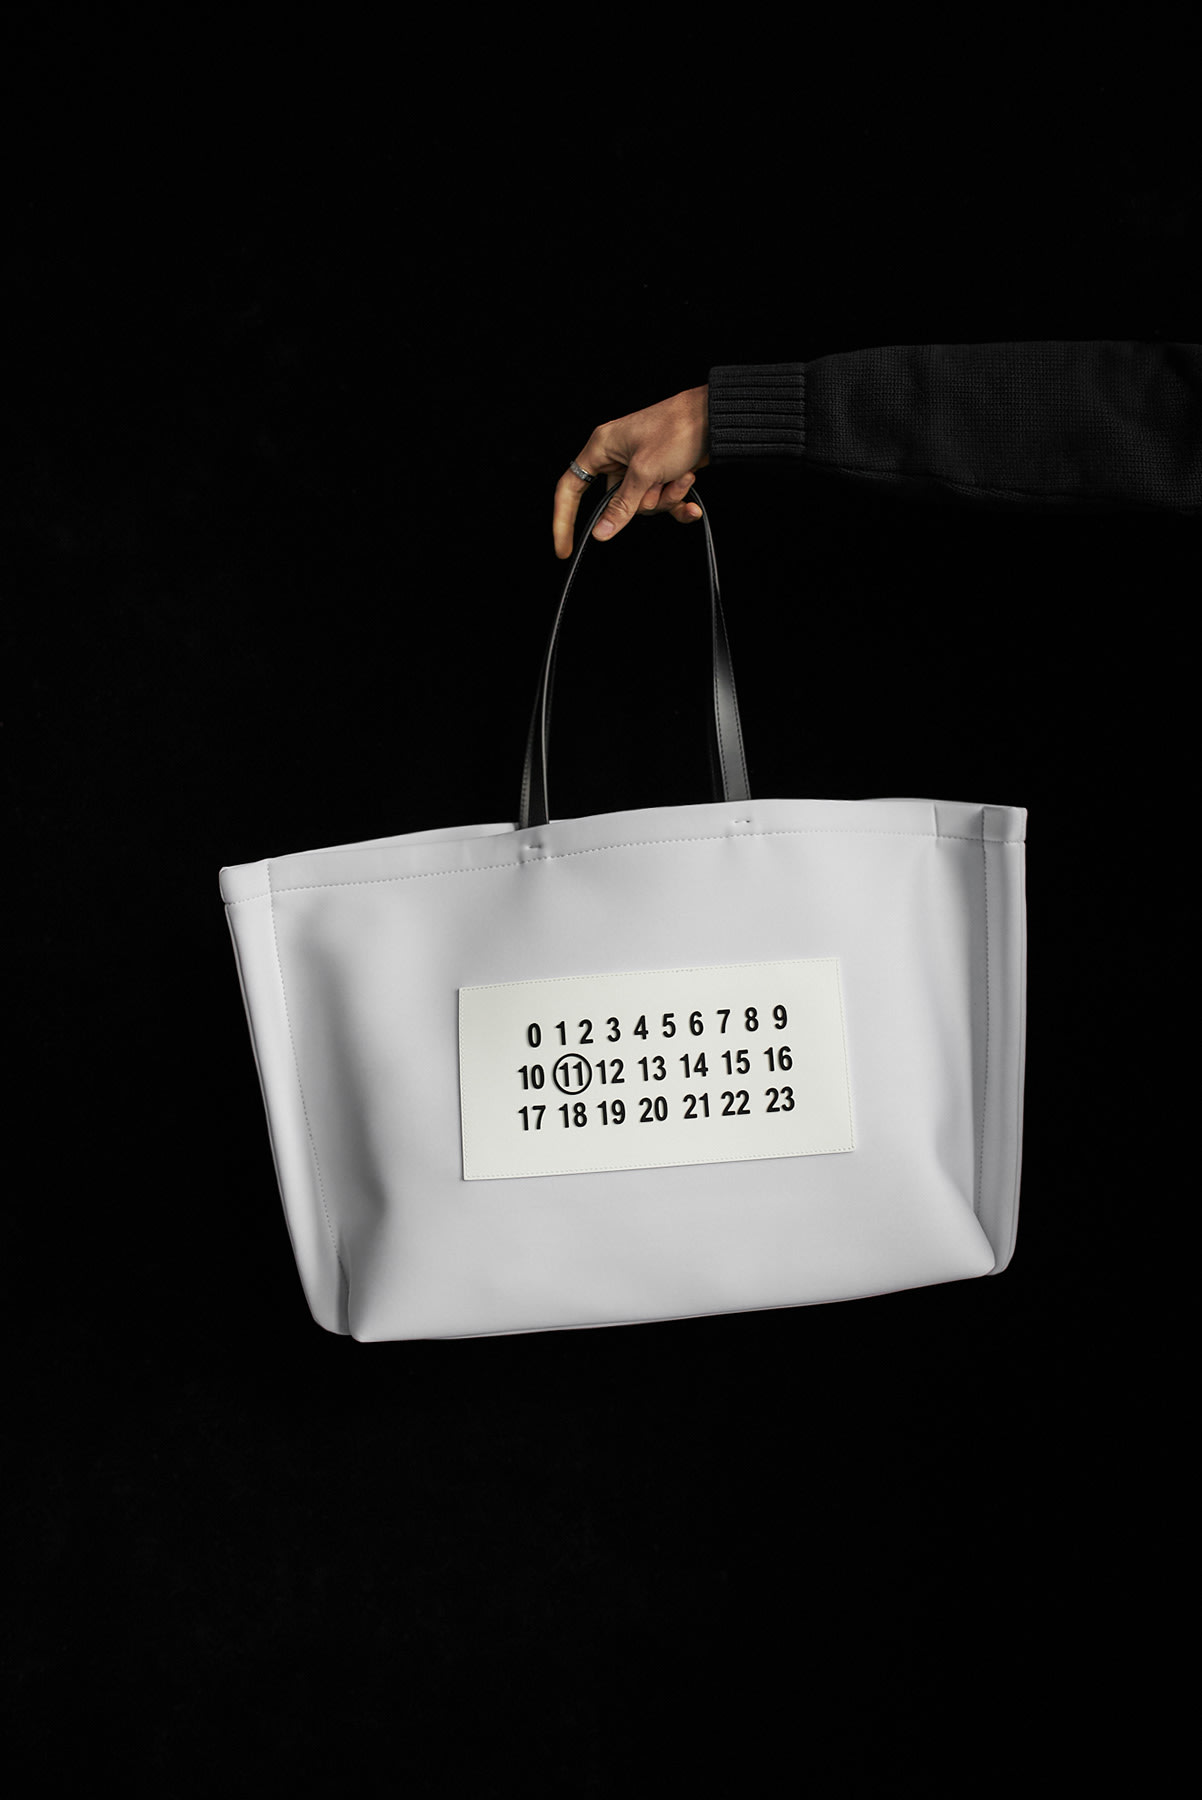 Maison Margiela's xl logo tote bag from END. AW19